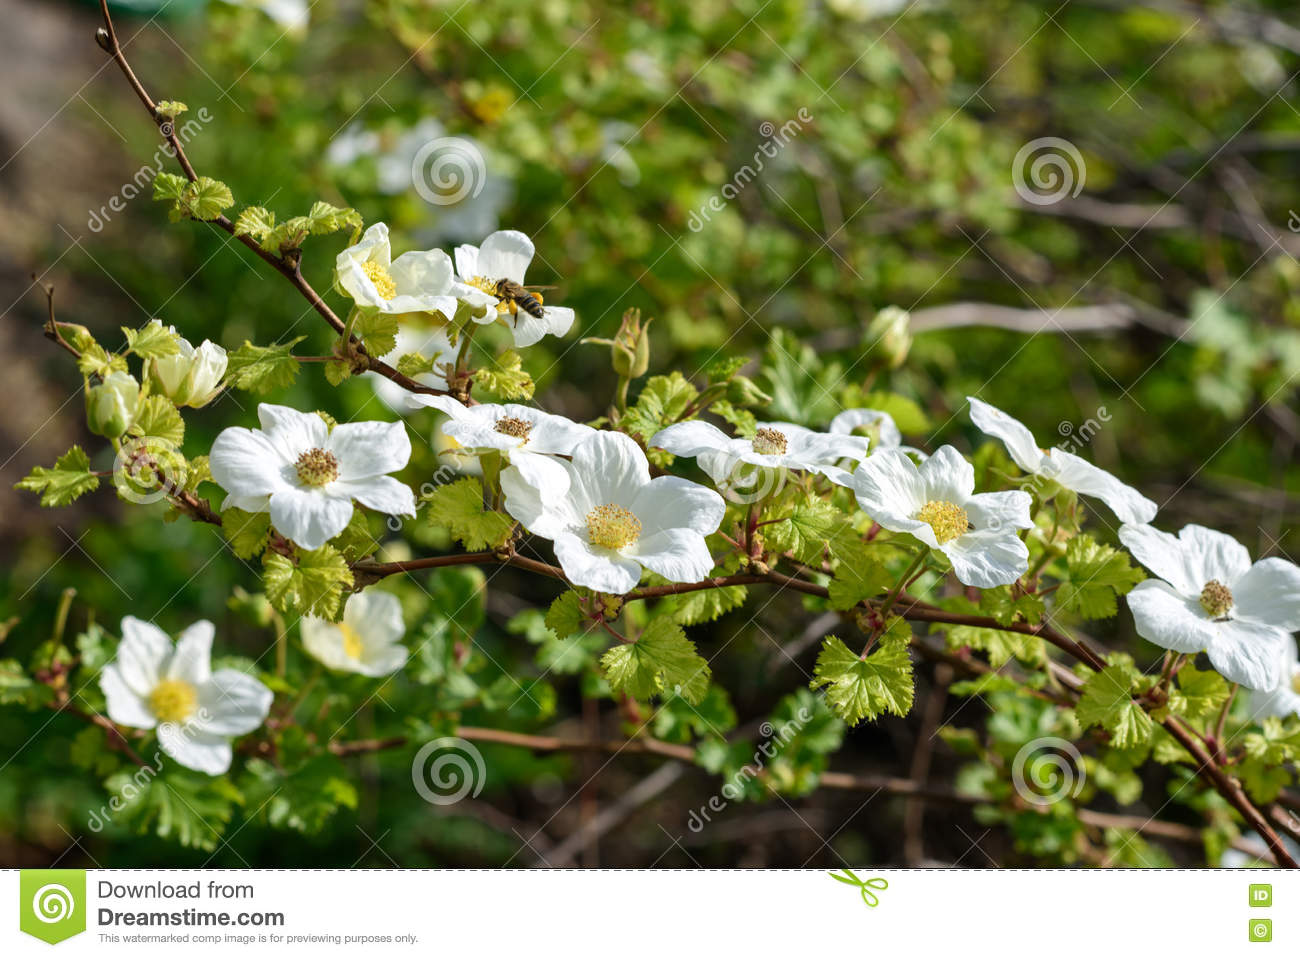 White Flowers In The Bush Stock Photo Image Of Background 70836976